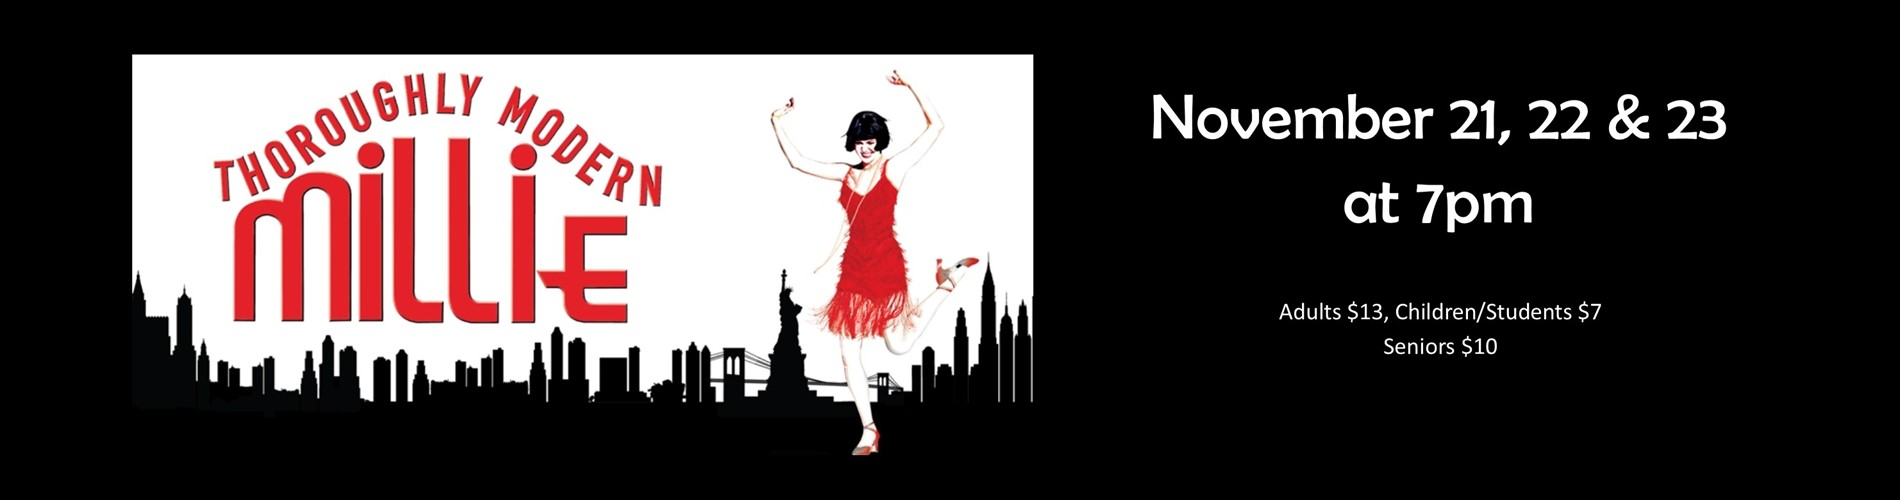 Logo of Thoroughly Modern Millie the musical